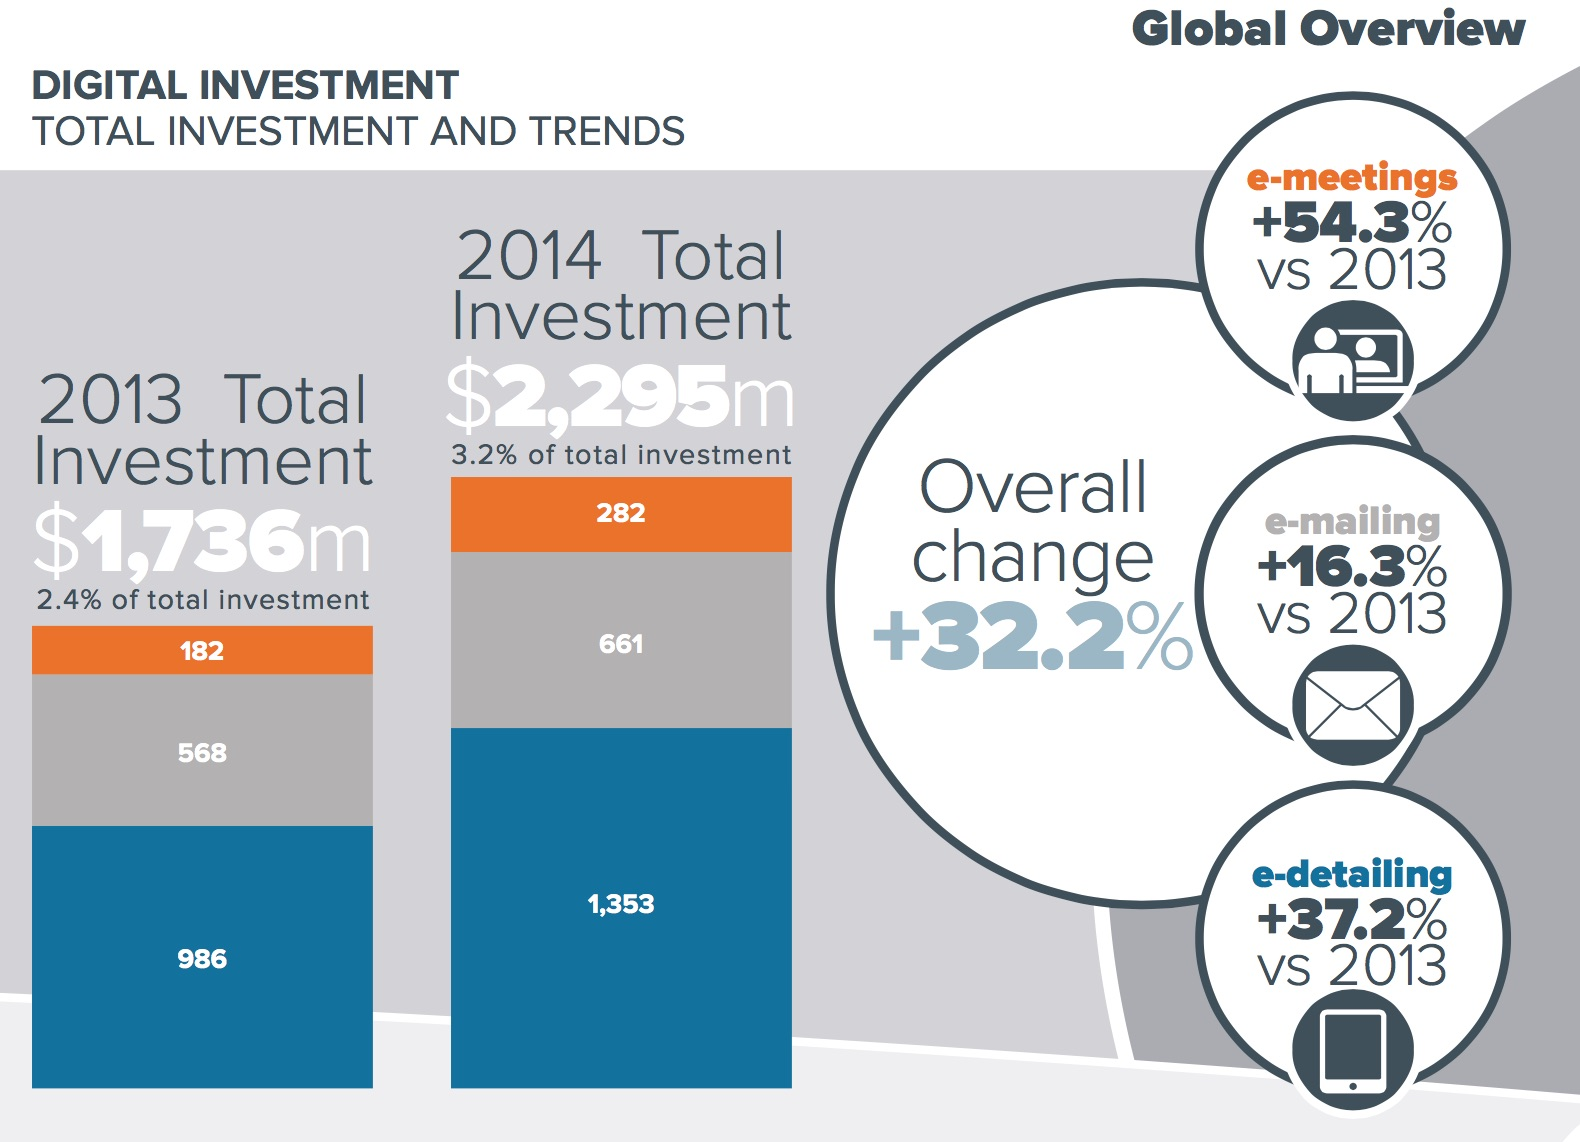 Pharma Digital Investment is Increasing, But Still Only 3-6% of the Total Promotional Spend